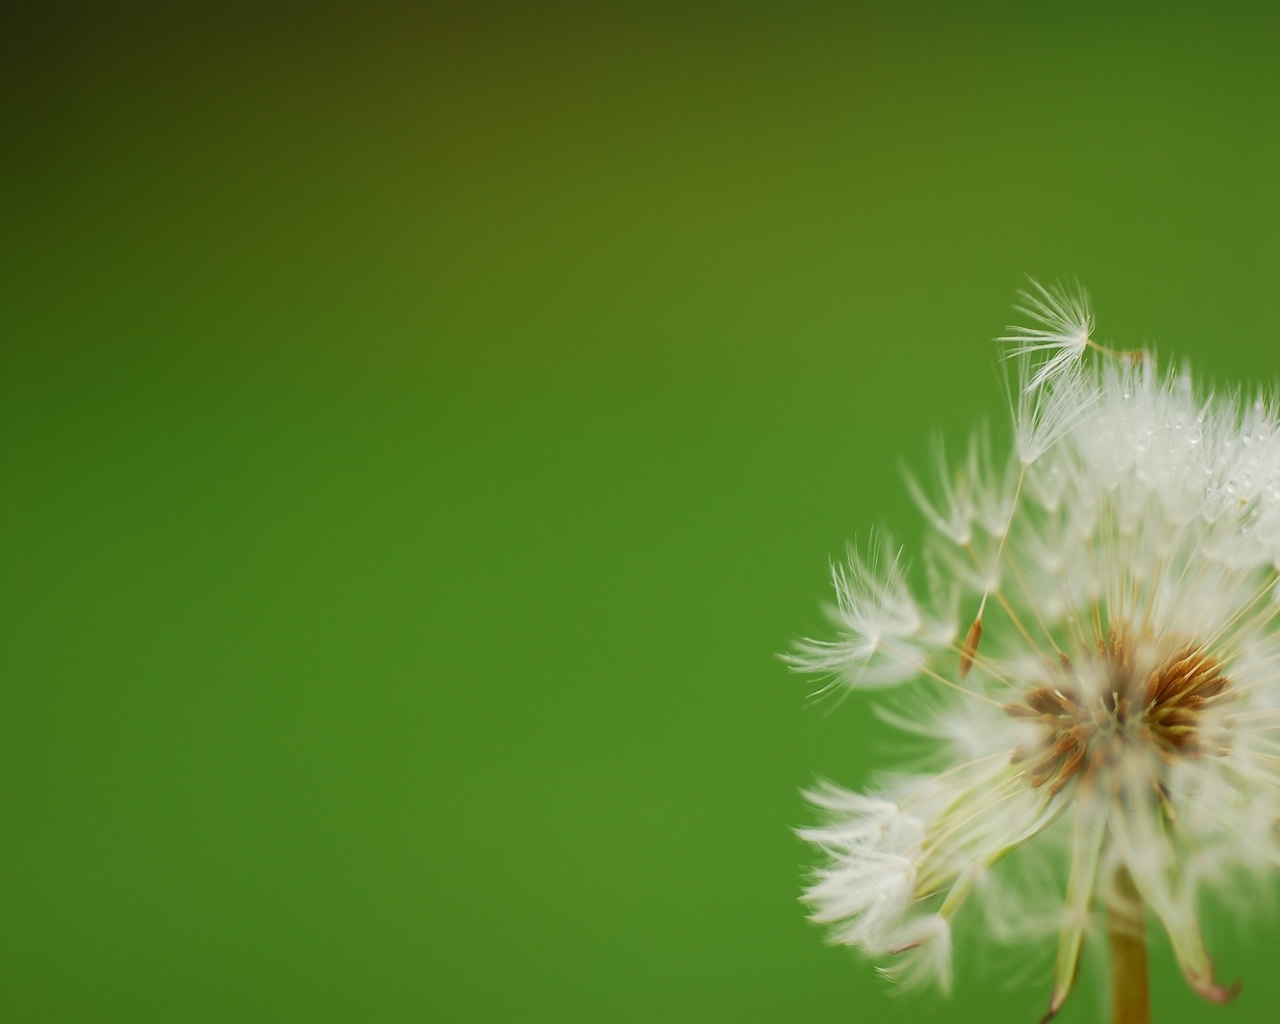 dandelion_blown_by_the_wind